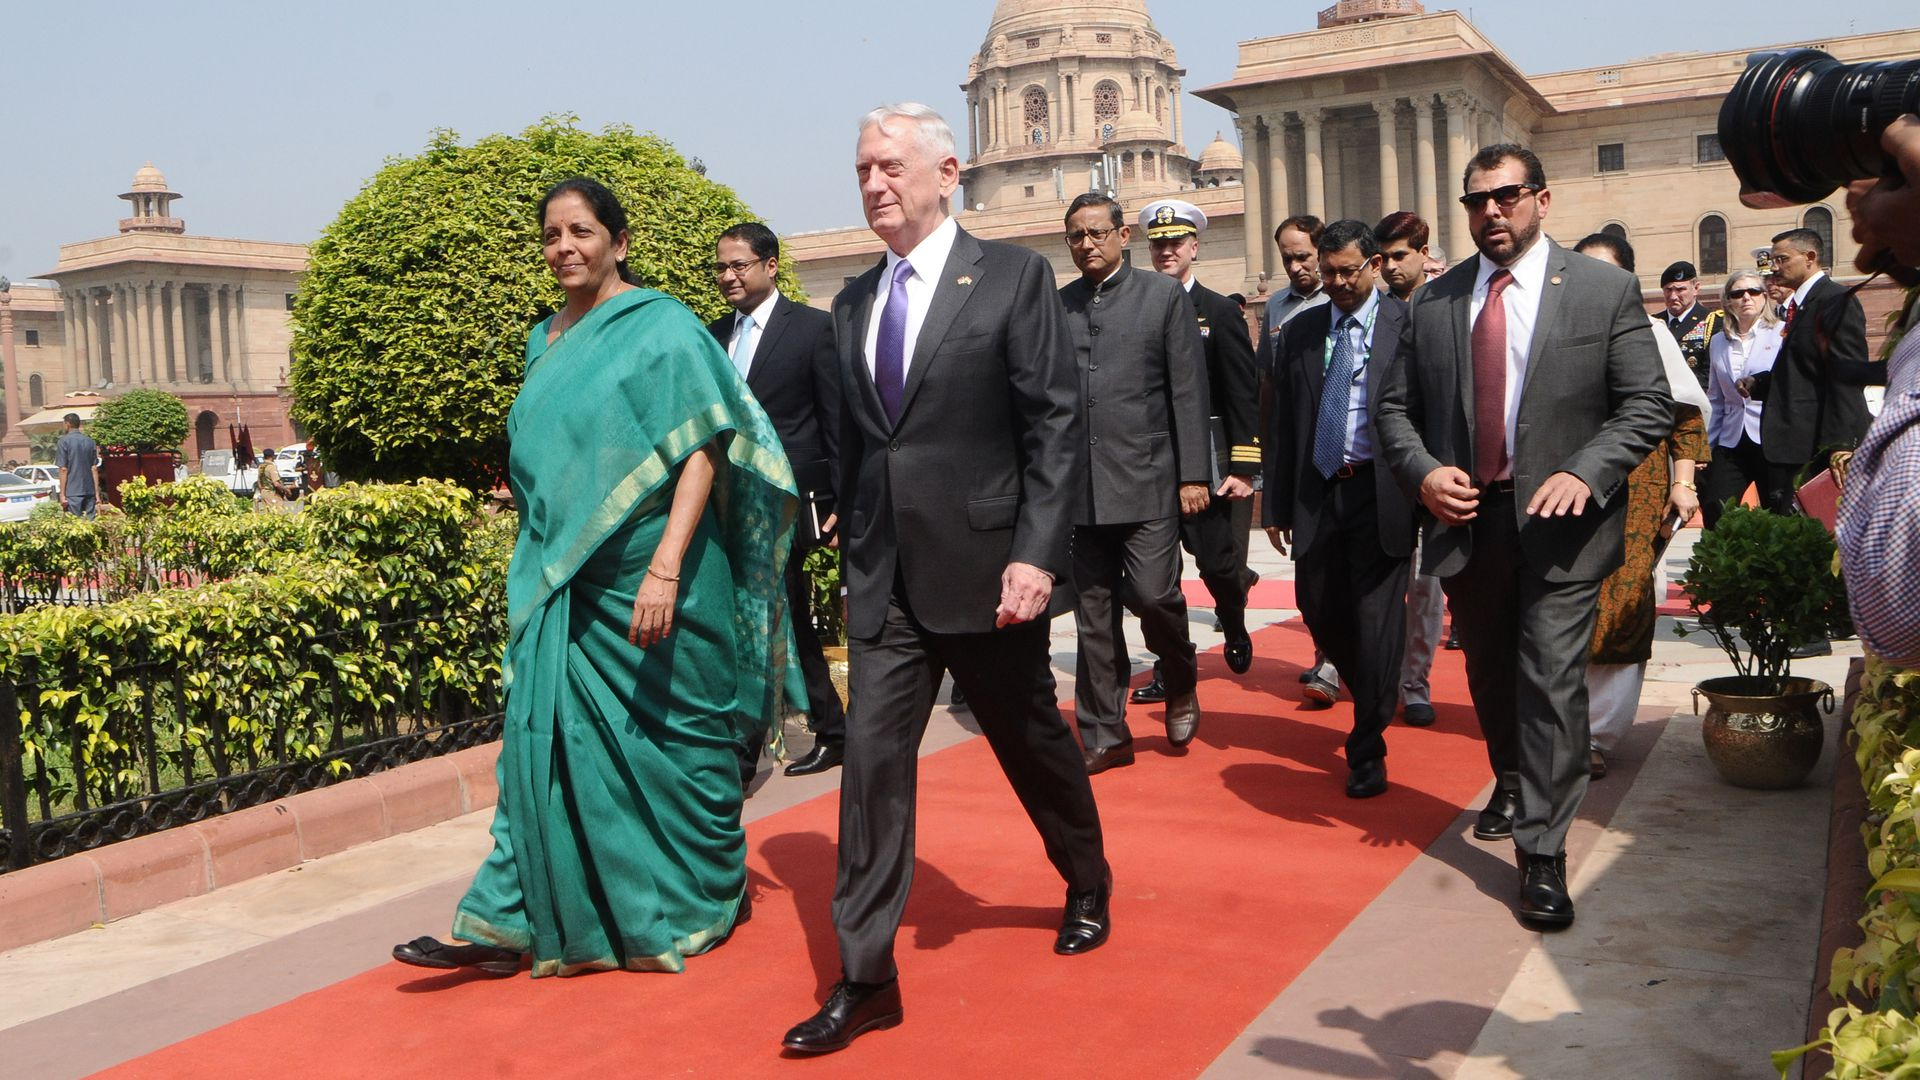 Defence Minister of India, Nirmala Sitharaman (L) welcomes US Secretary of Defence James Mattis  upon his arrival at the Indian Ministry of Defence in New Delhi, India on September 26, 2017.